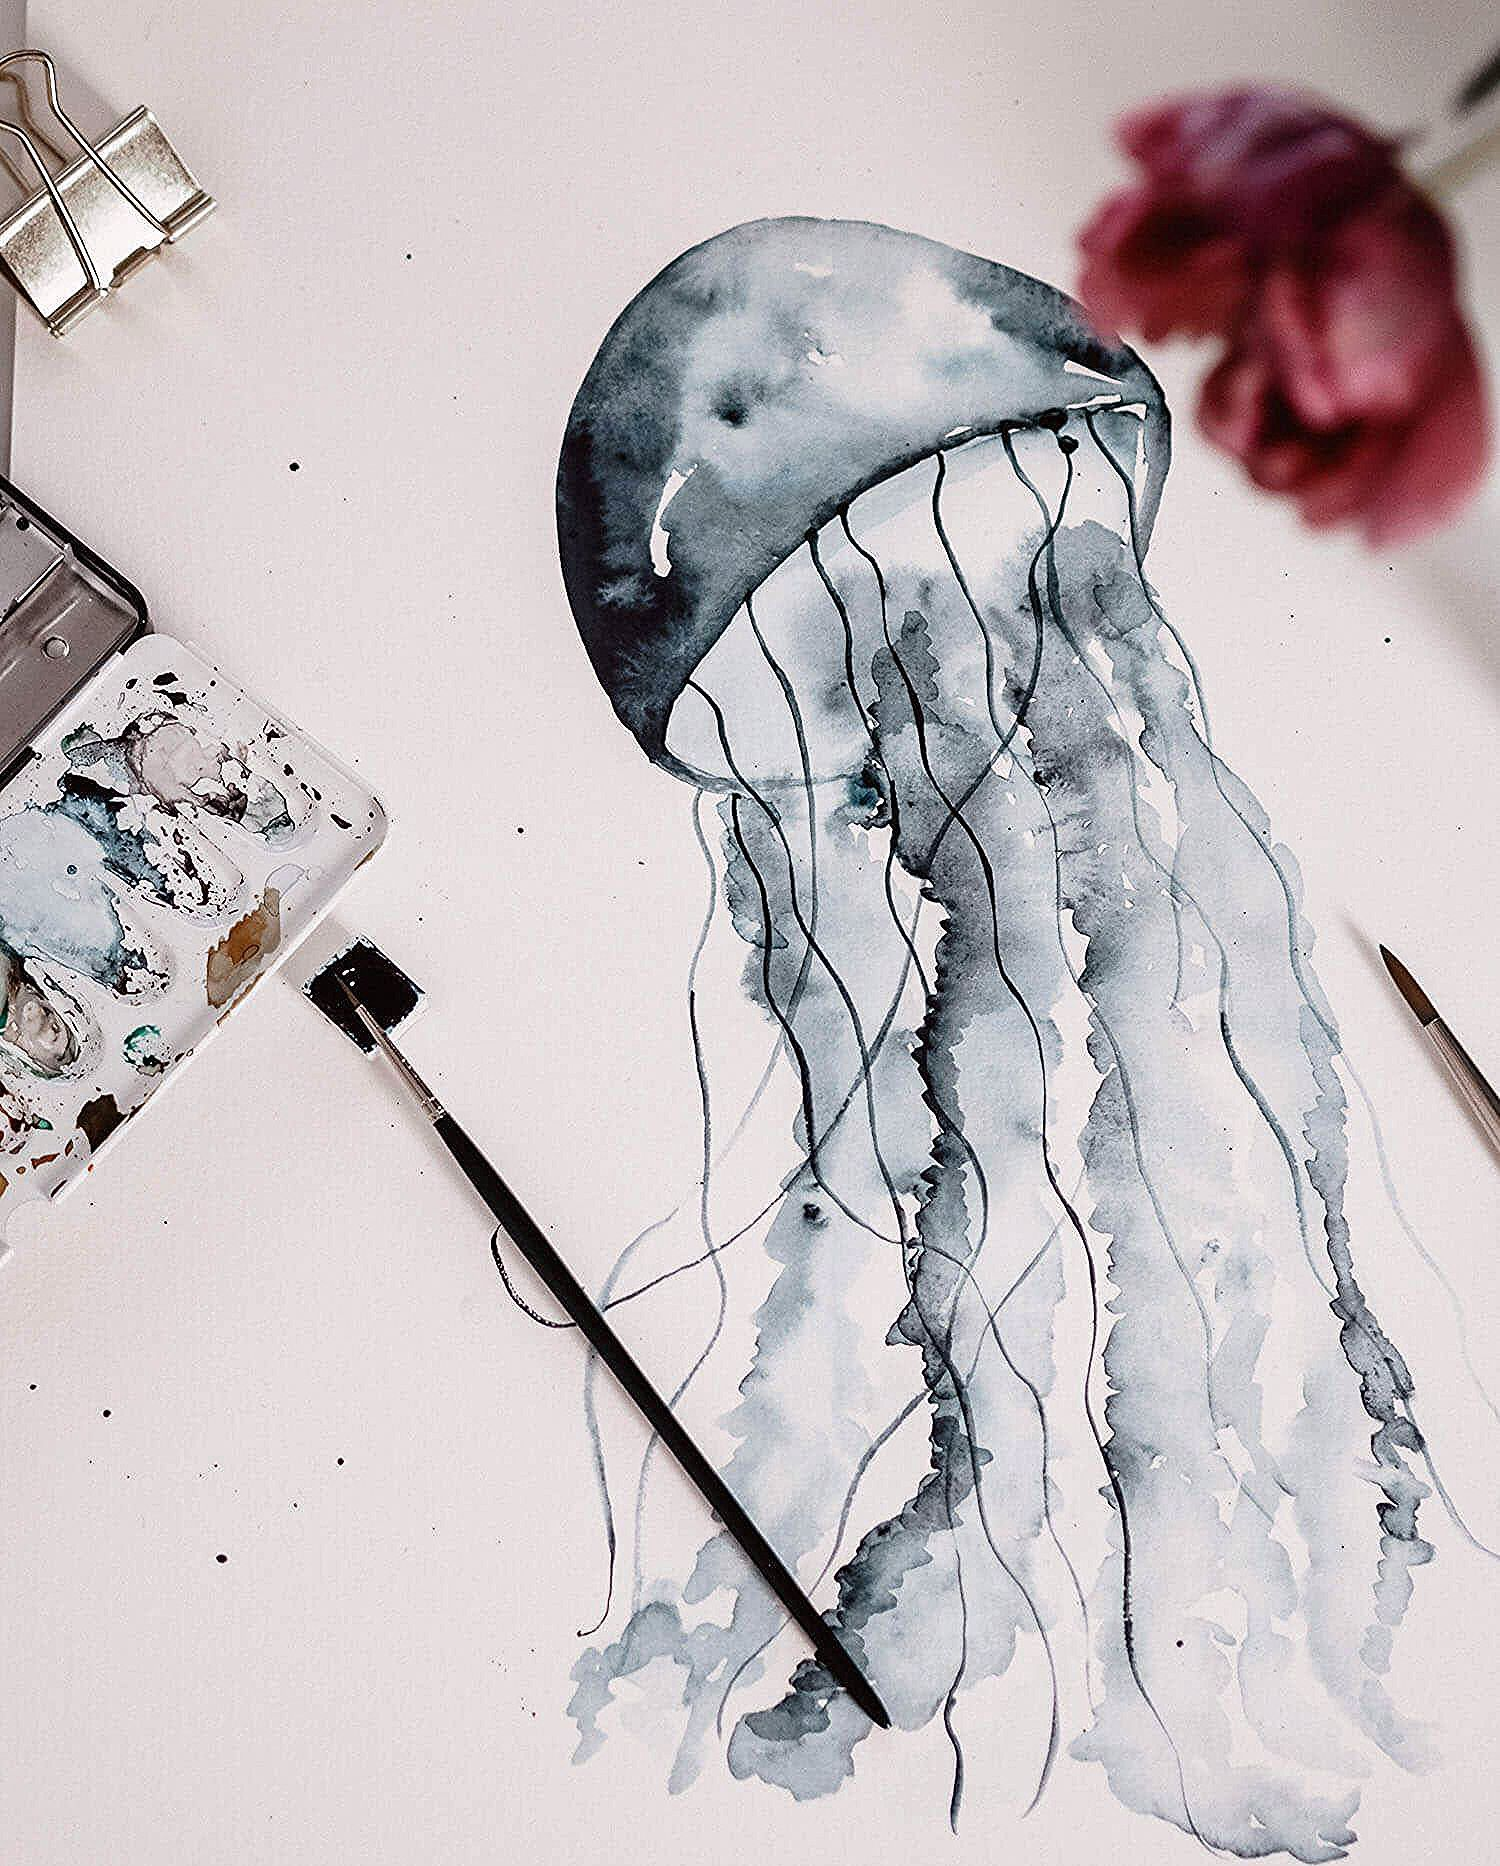 Tutorial Aquarell Qualle Watercolor Jellyfish Step By Step